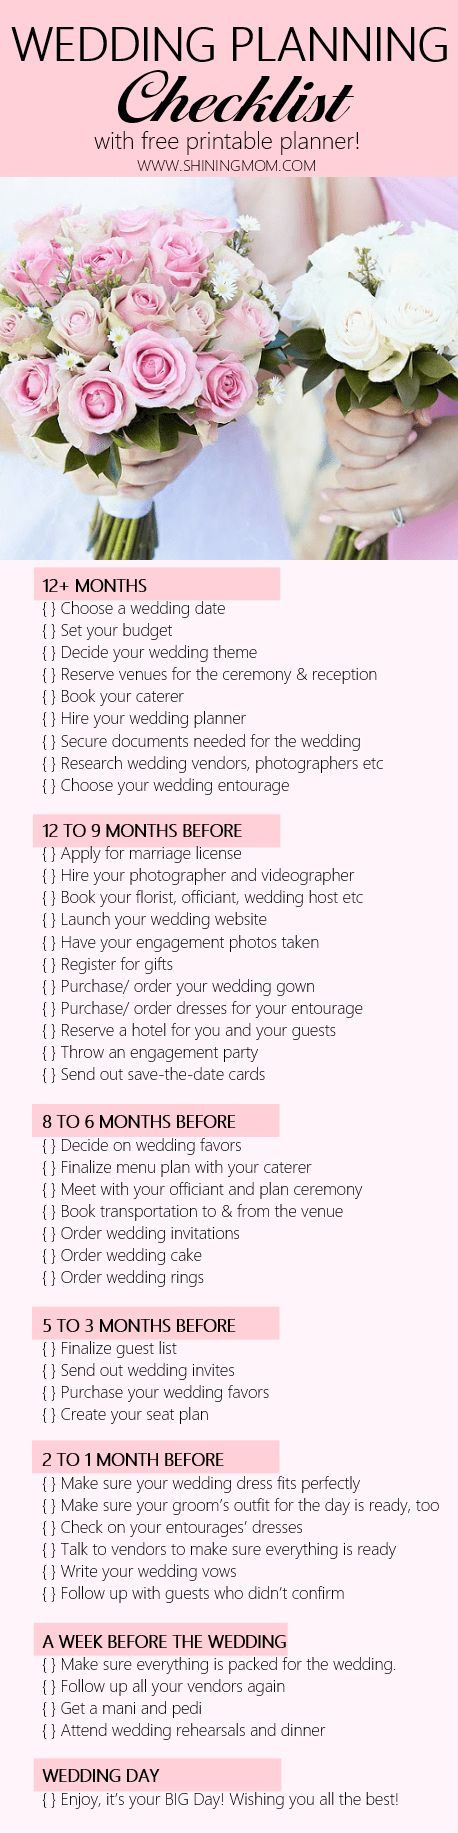 Free Printable Wedding Planner with Checklist 159